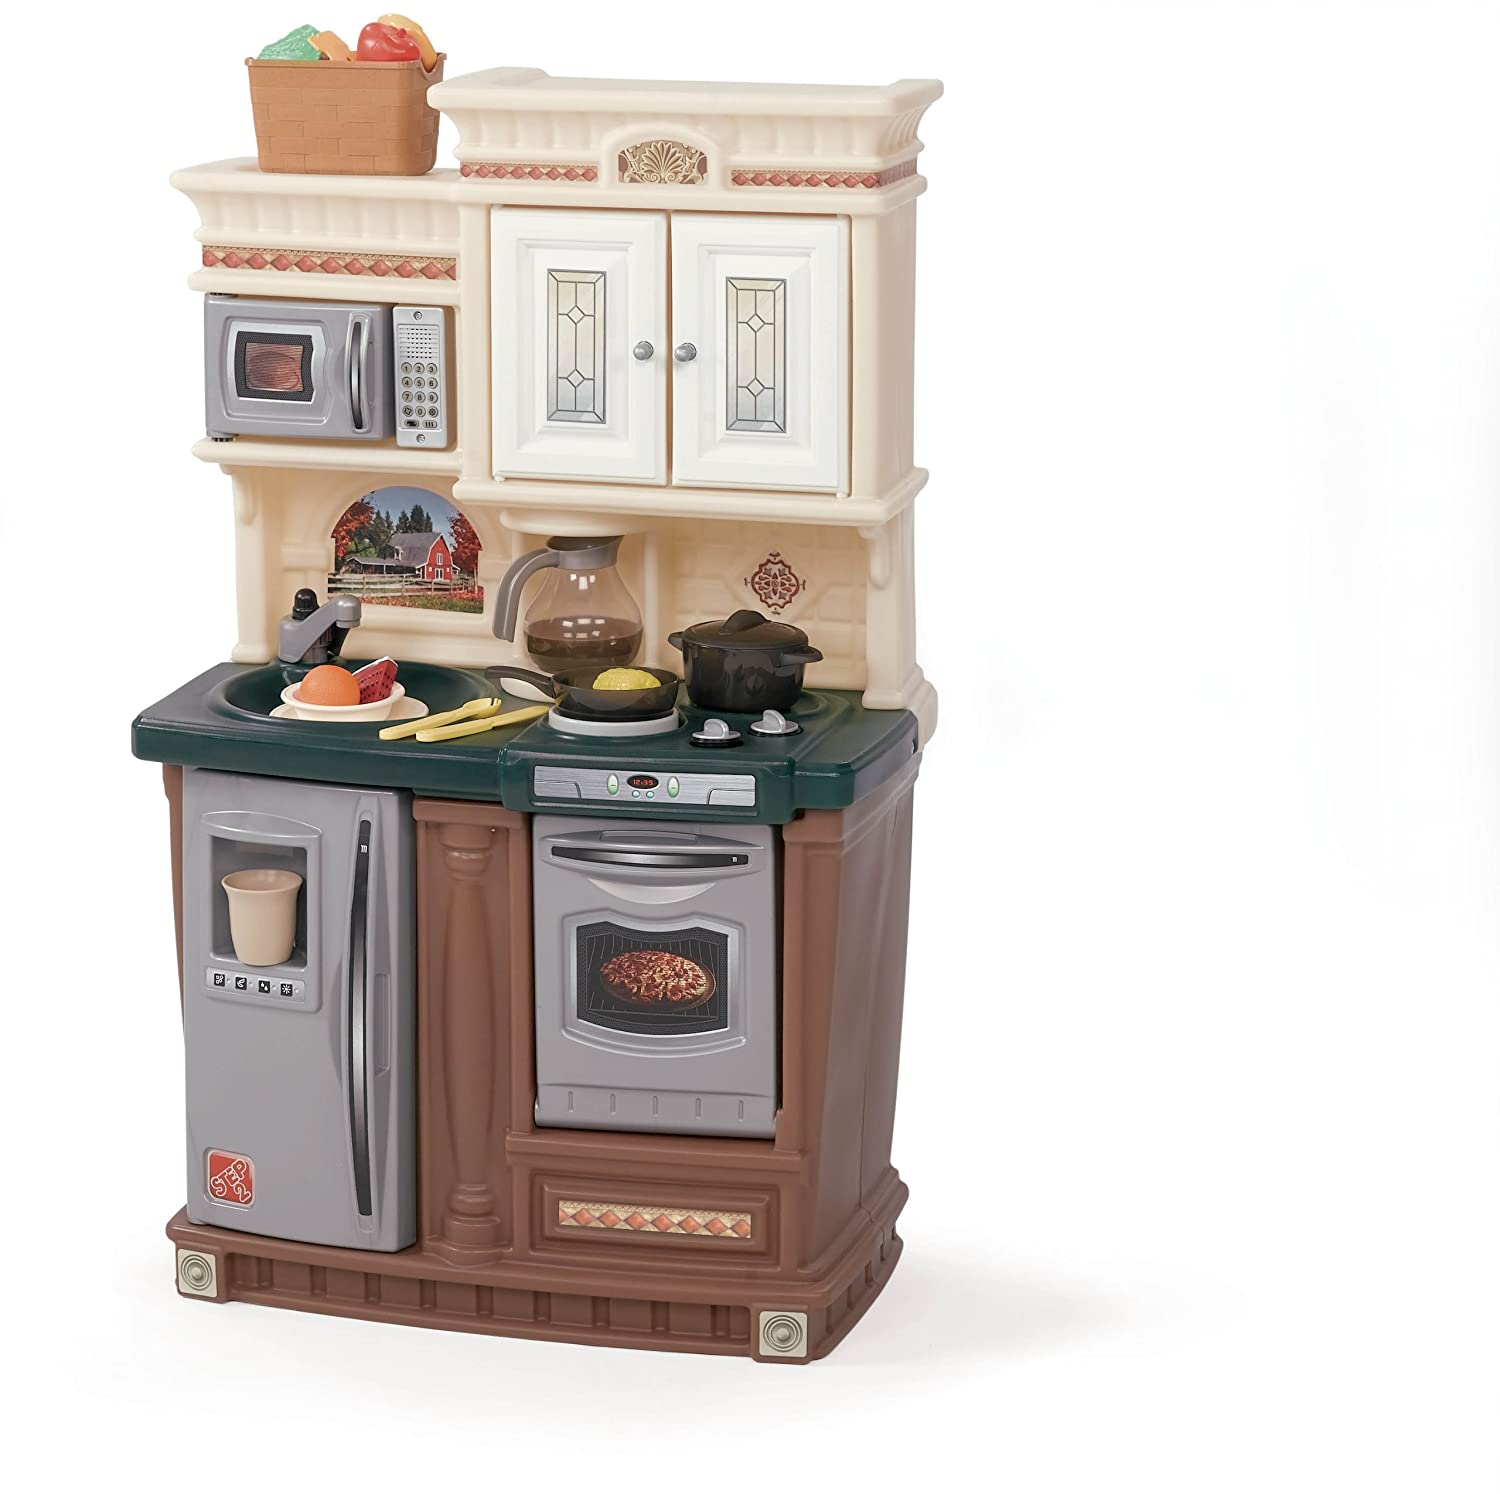 Amazon.com: Step2 LifeStyle New Traditions Kitchen Set: Toys & Games